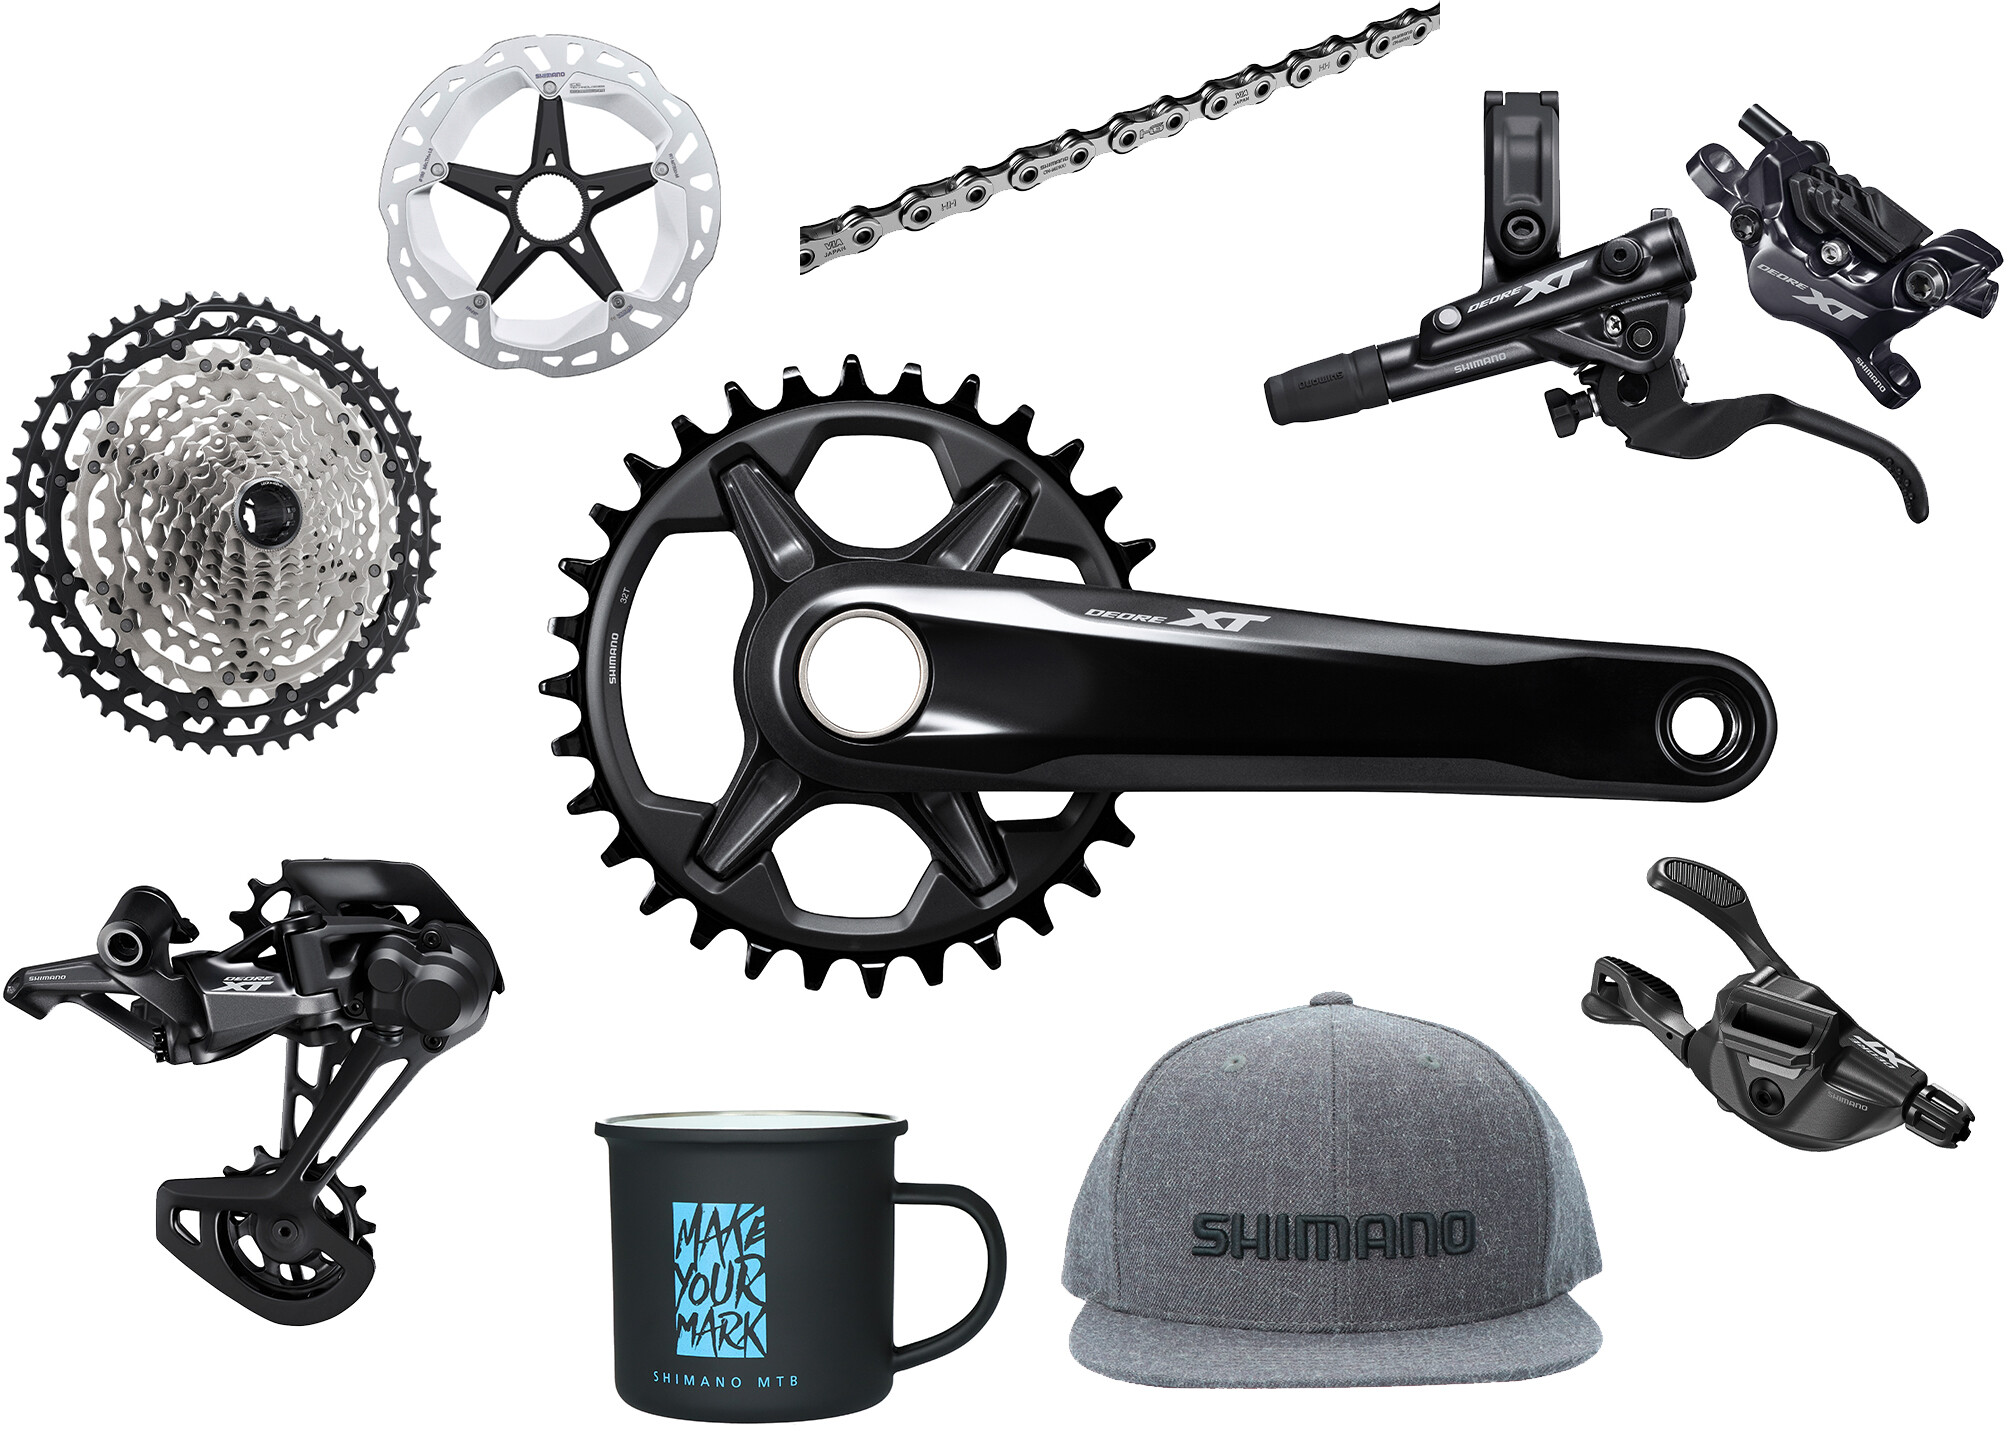 Shimano Deore XT M8100 Priority Pack w/o Hubs 1x12-speed, black/silver (2020) | Hubs